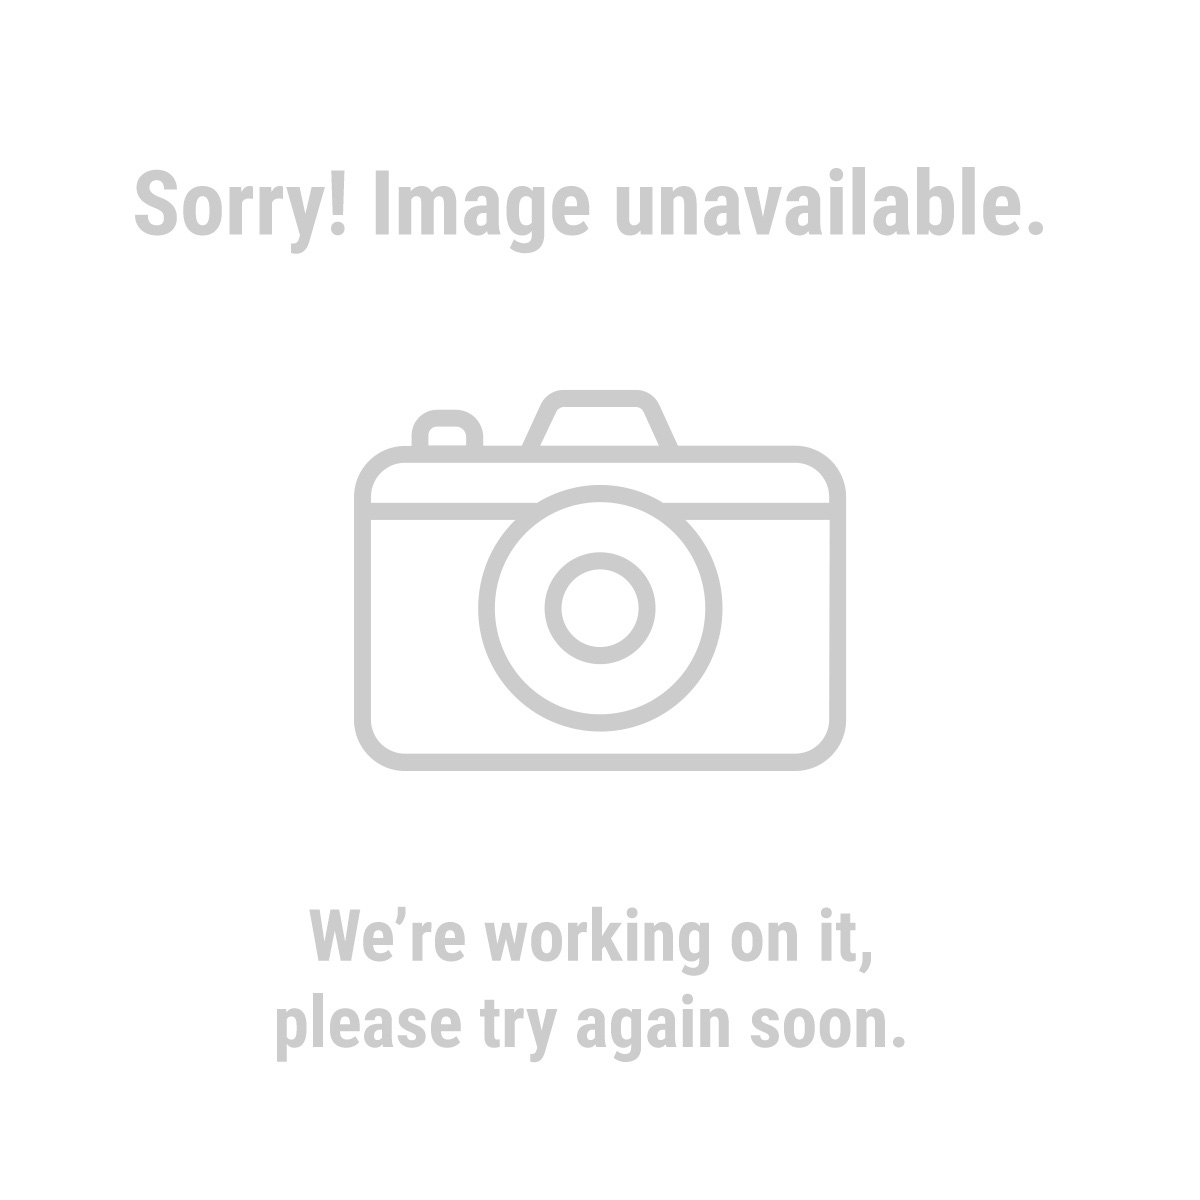 Bearing Puller Types : Jaw pilot bearing puller